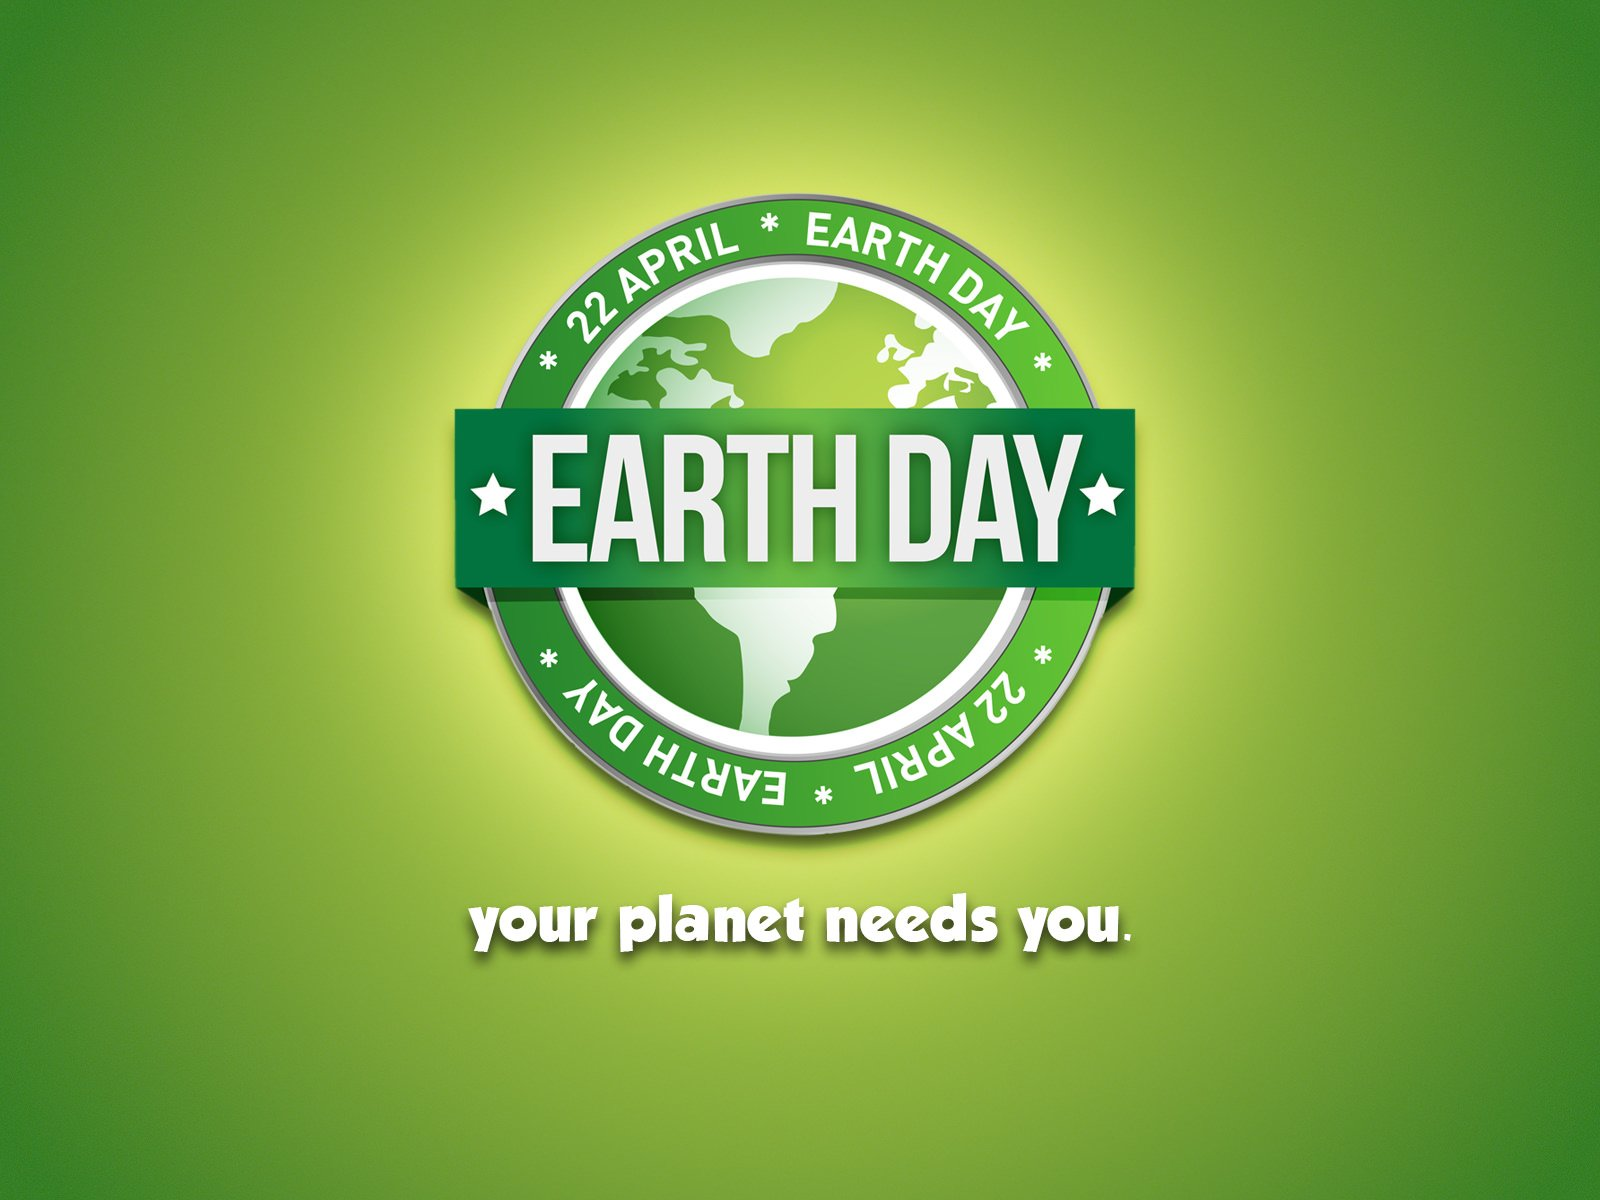 EARTH Day 22nd April 2017